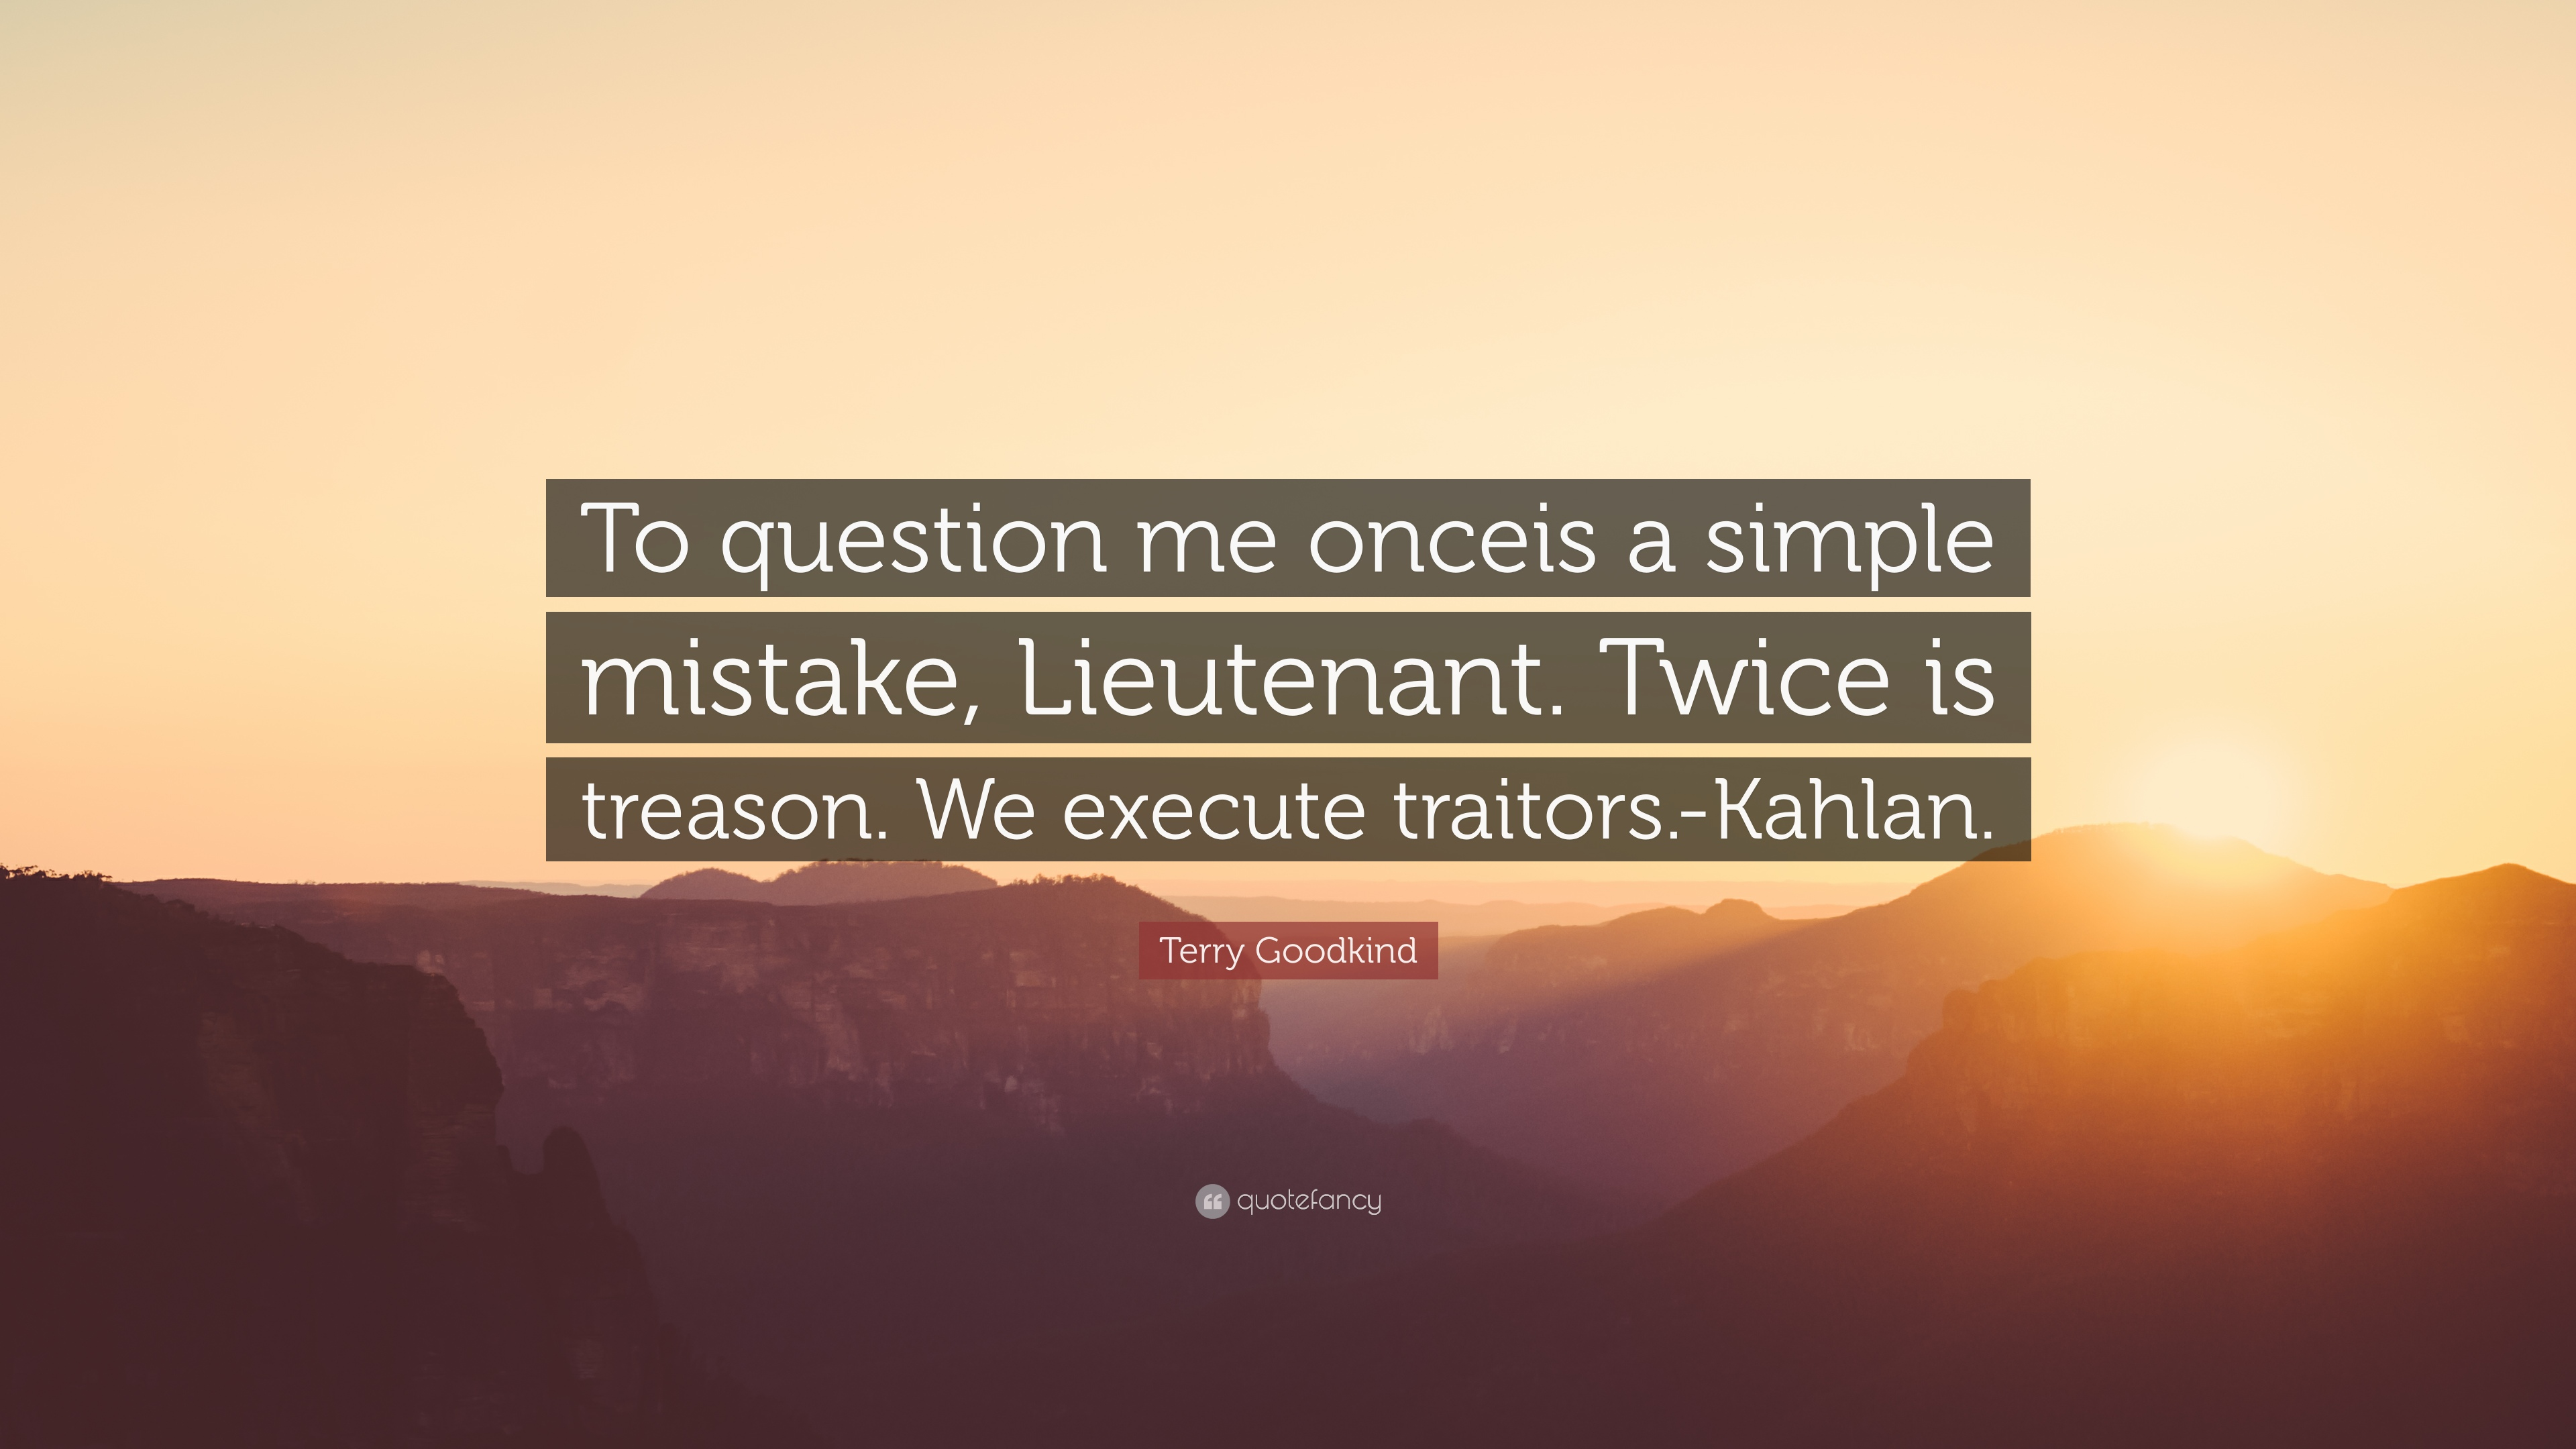 Terry Goodkind Quote To Question Me Onceis A Simple Mistake Lieutenant Twice